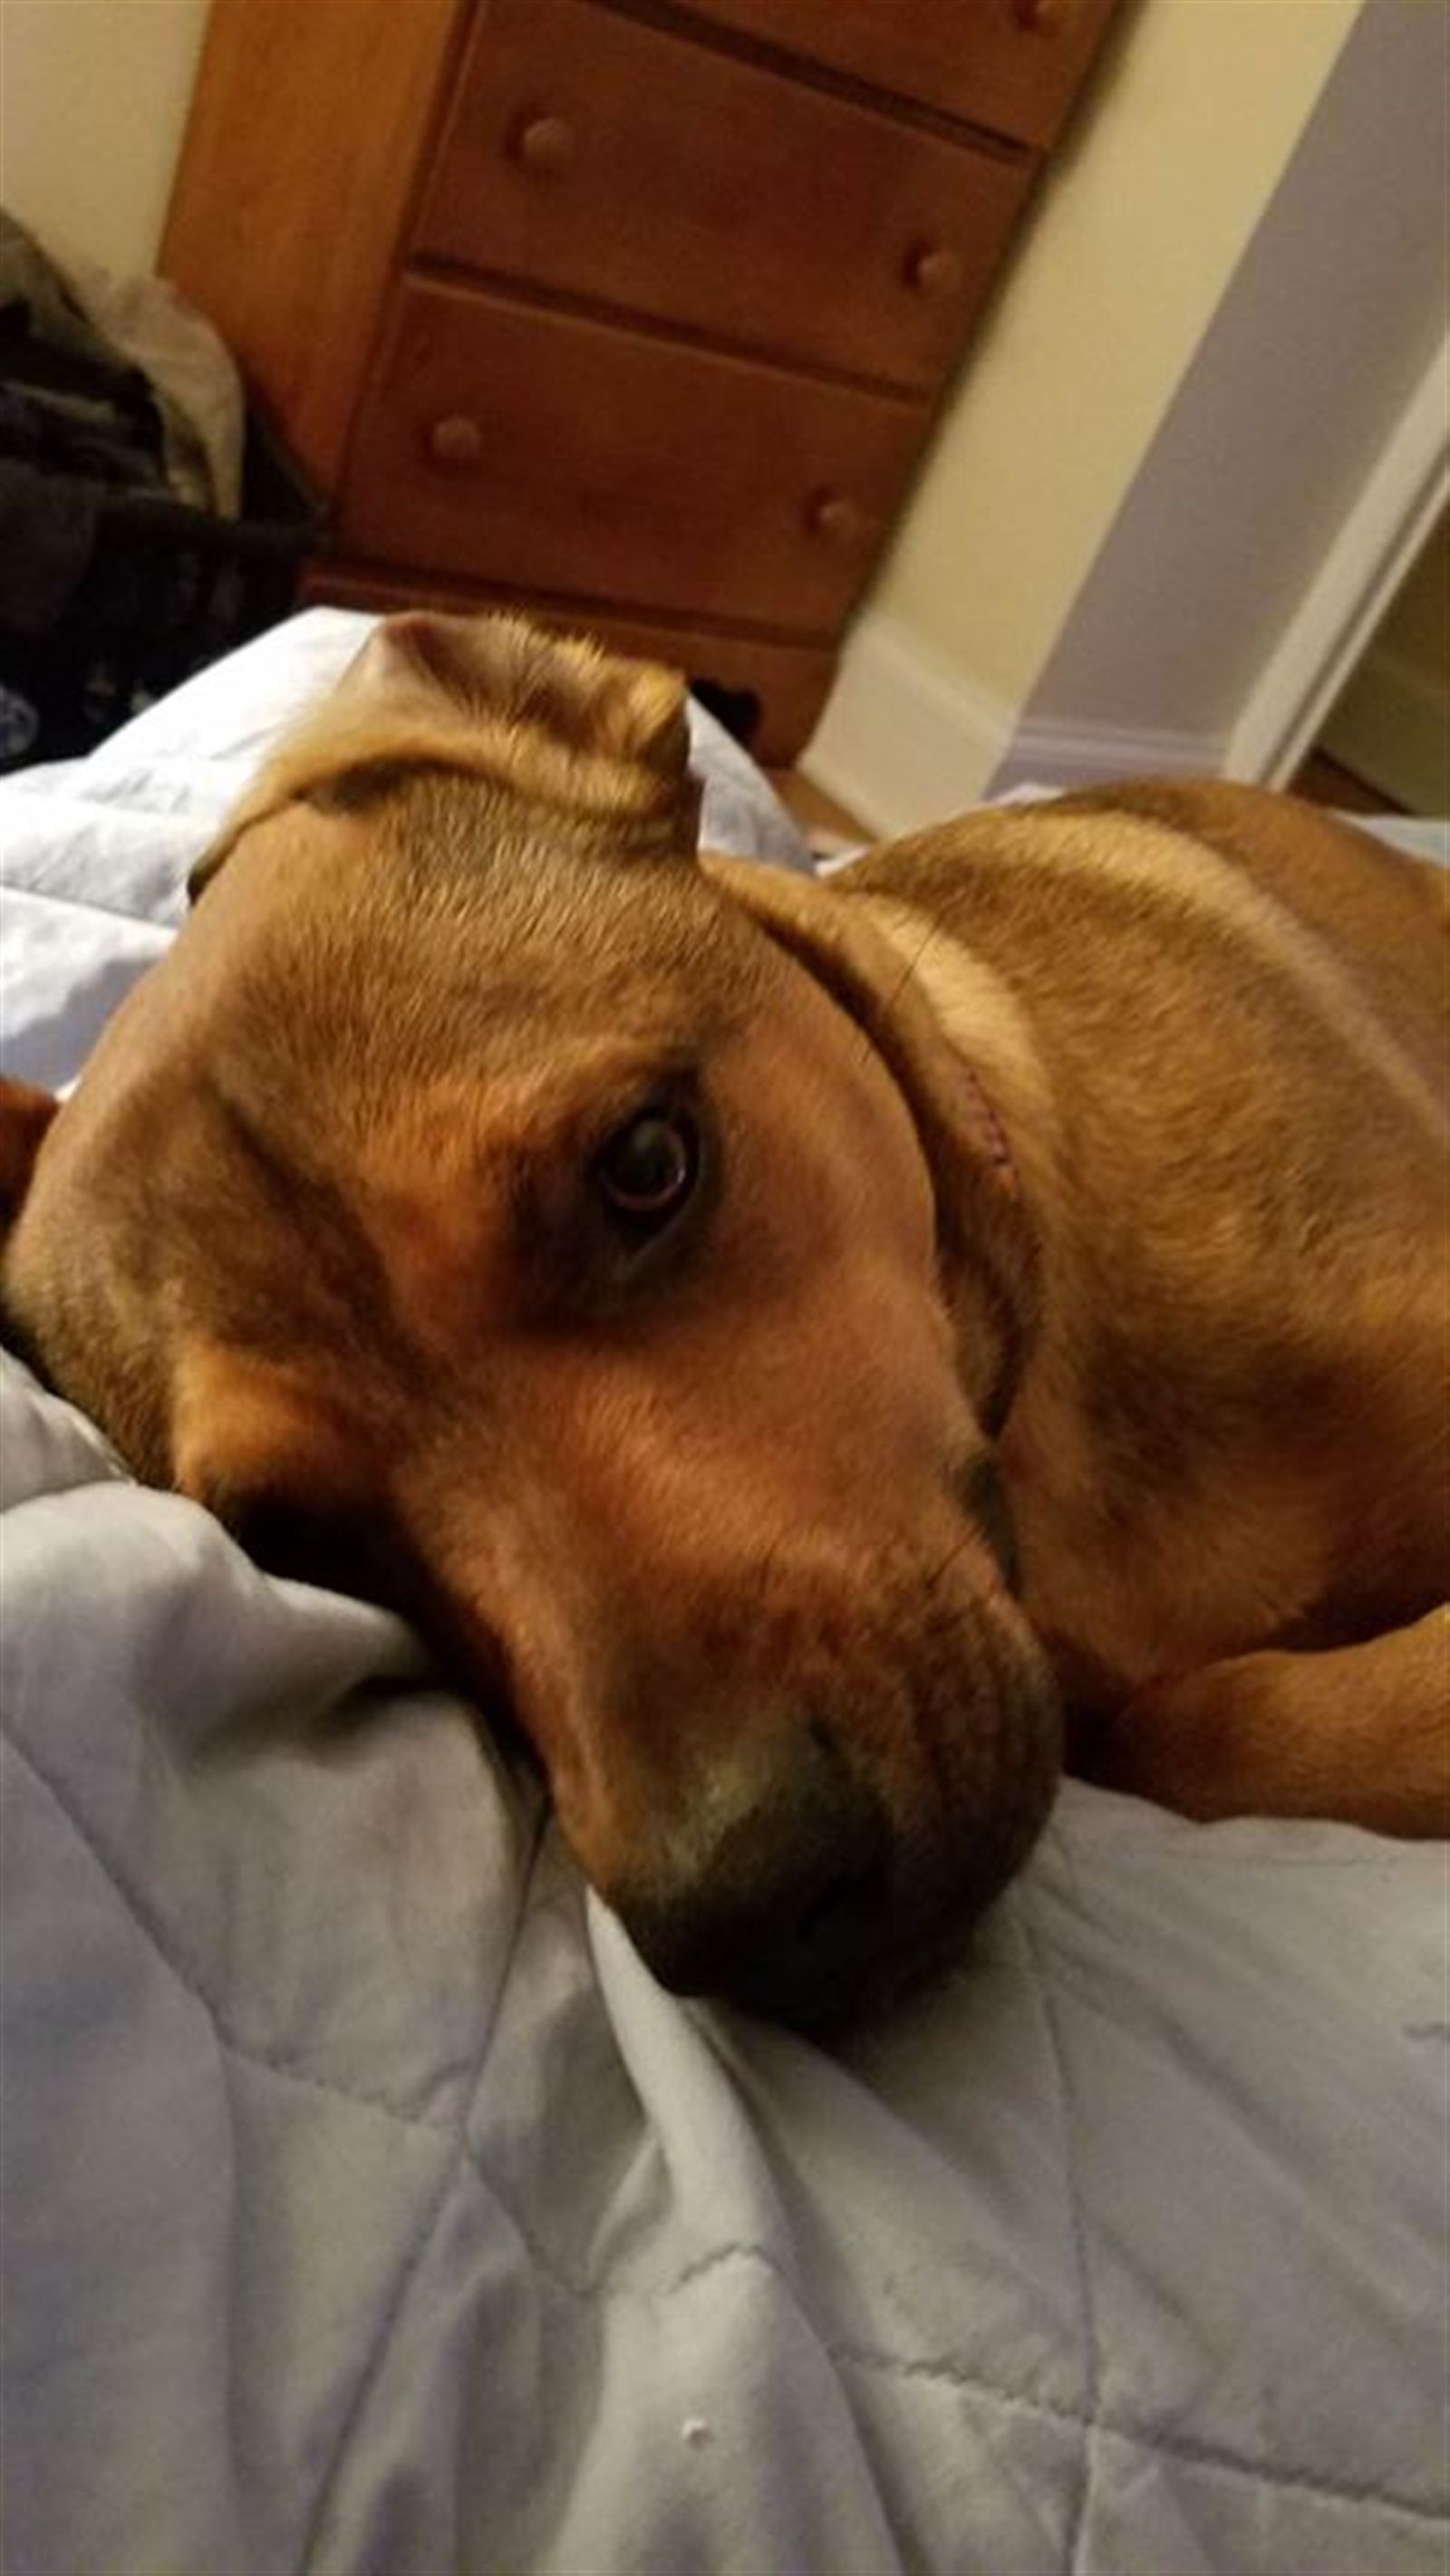 This is Pepper. She is a mix between a rhodesian ridgeback